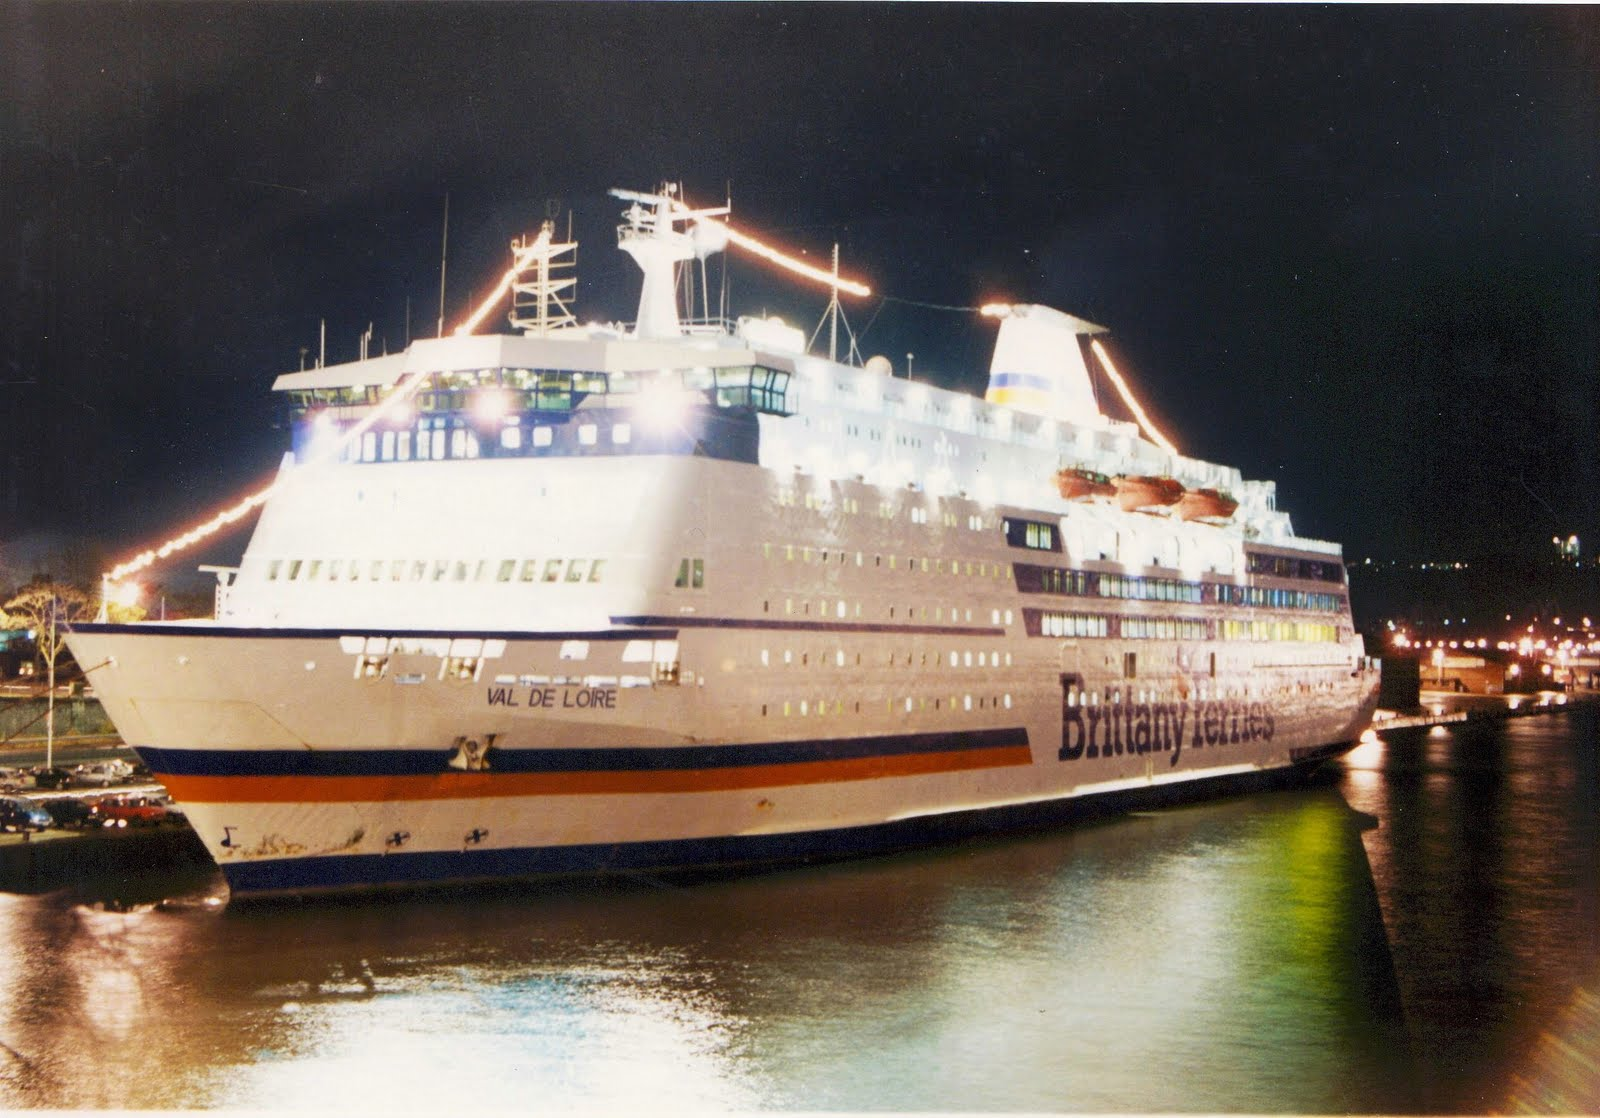 """Portsmouth To Le Havre >> BRITTANY FERRIES: THE MUCH LOVED """"VAL DE LOIRE"""""""